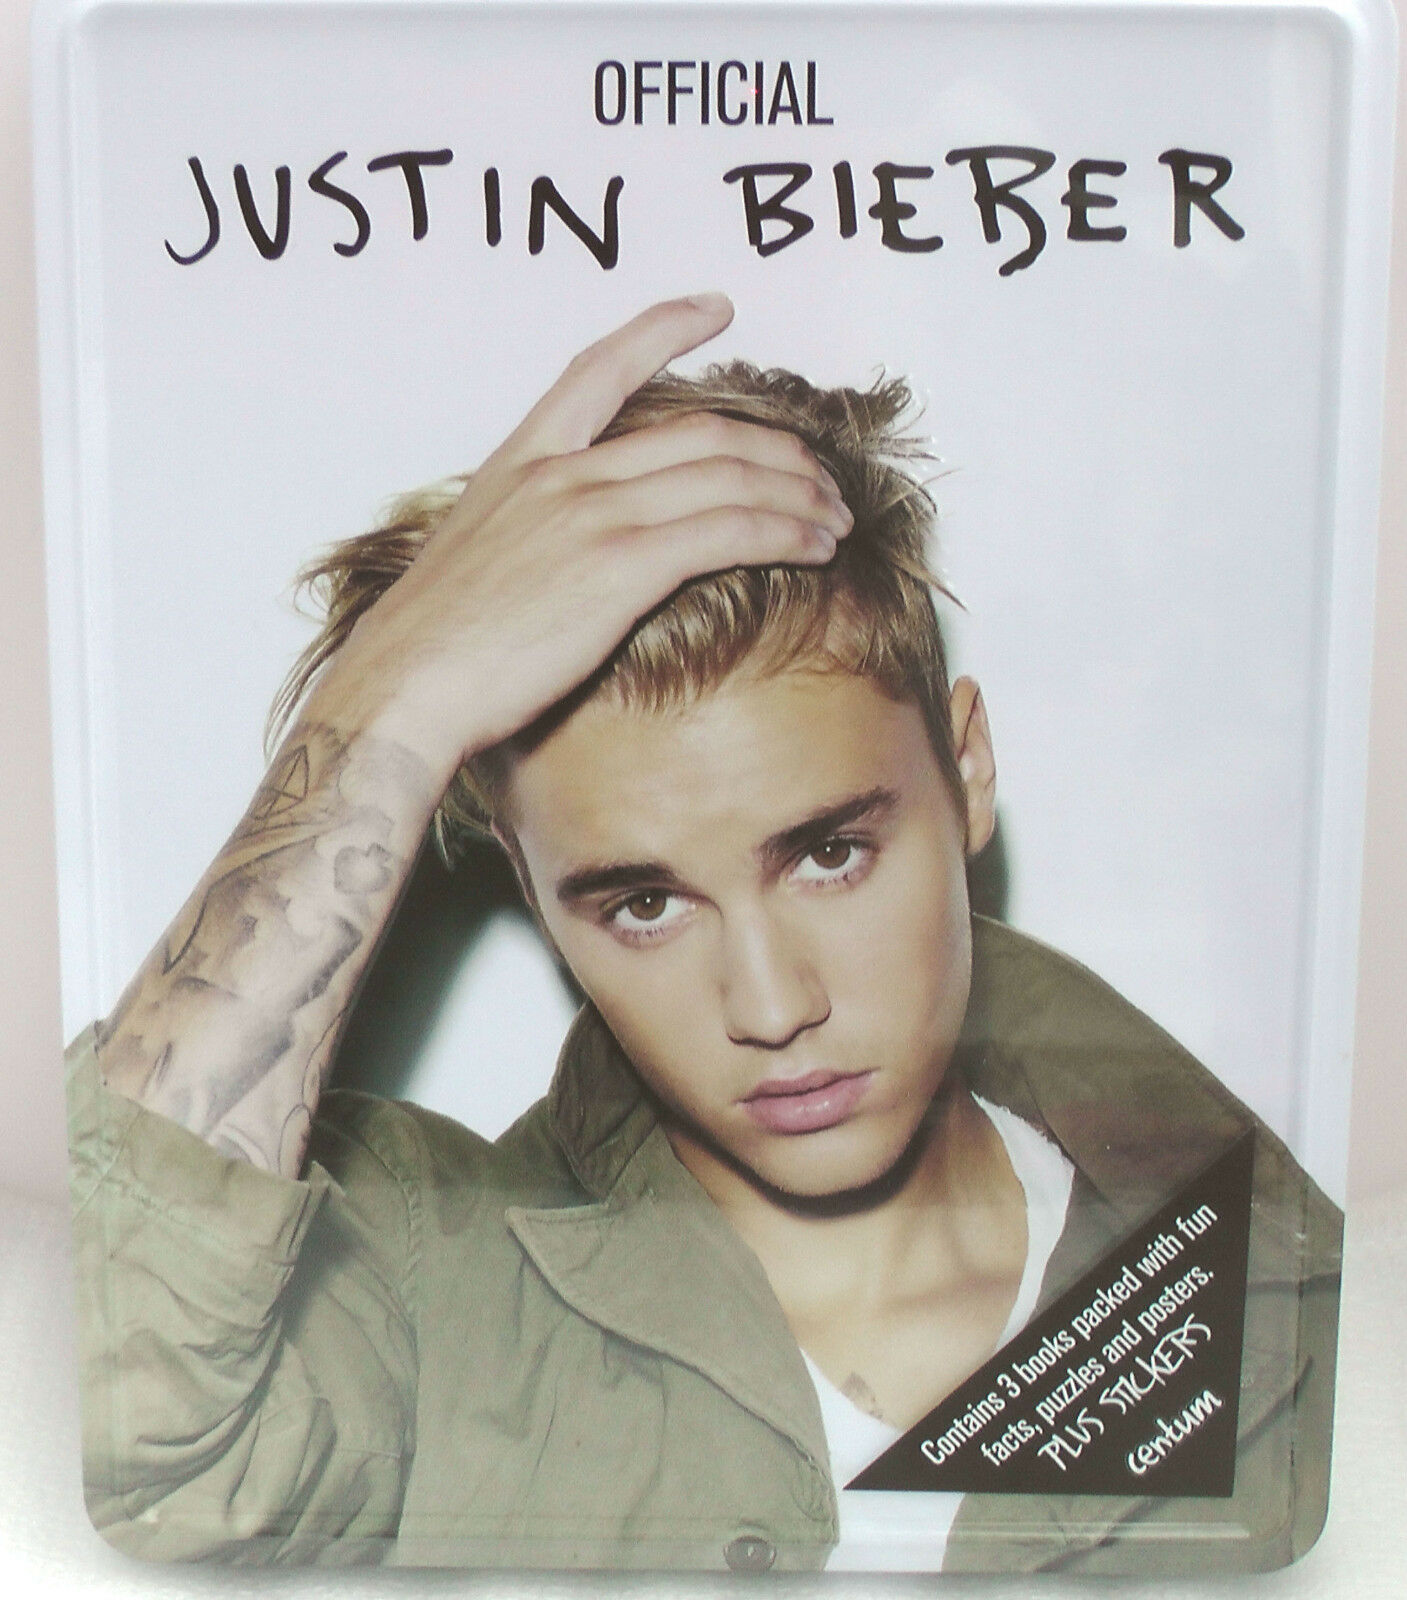 Uncategorized Justin Bieber Puzzle justin bieber gift tin of 3 books containing facts puzzles posters picture 1 3